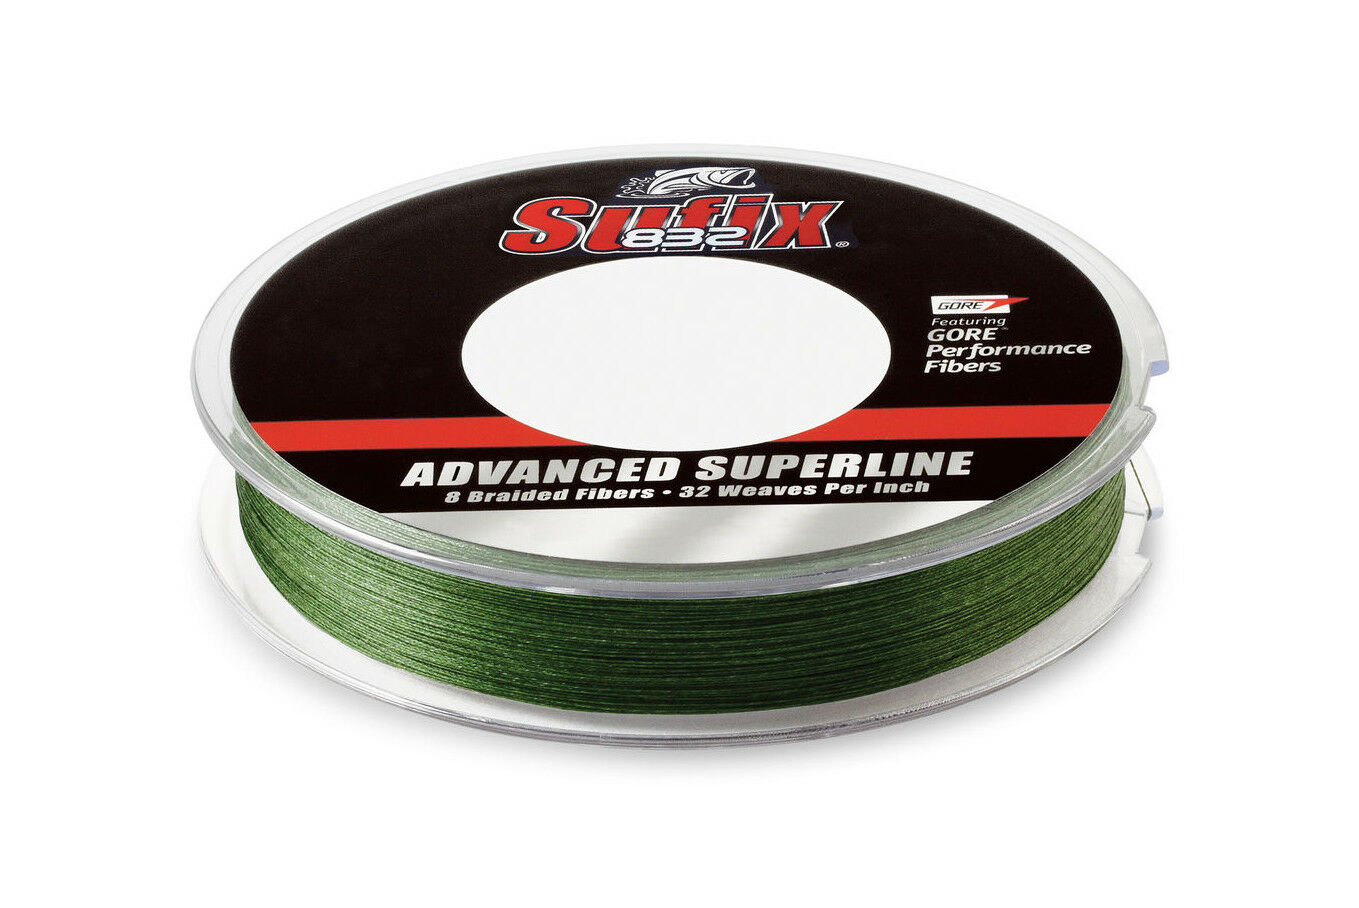 Sufix 832 Braided Advanced  Superline Lo-Vis Green 3500yd FREE SHIPPING WITHIN US  clearance up to 70%